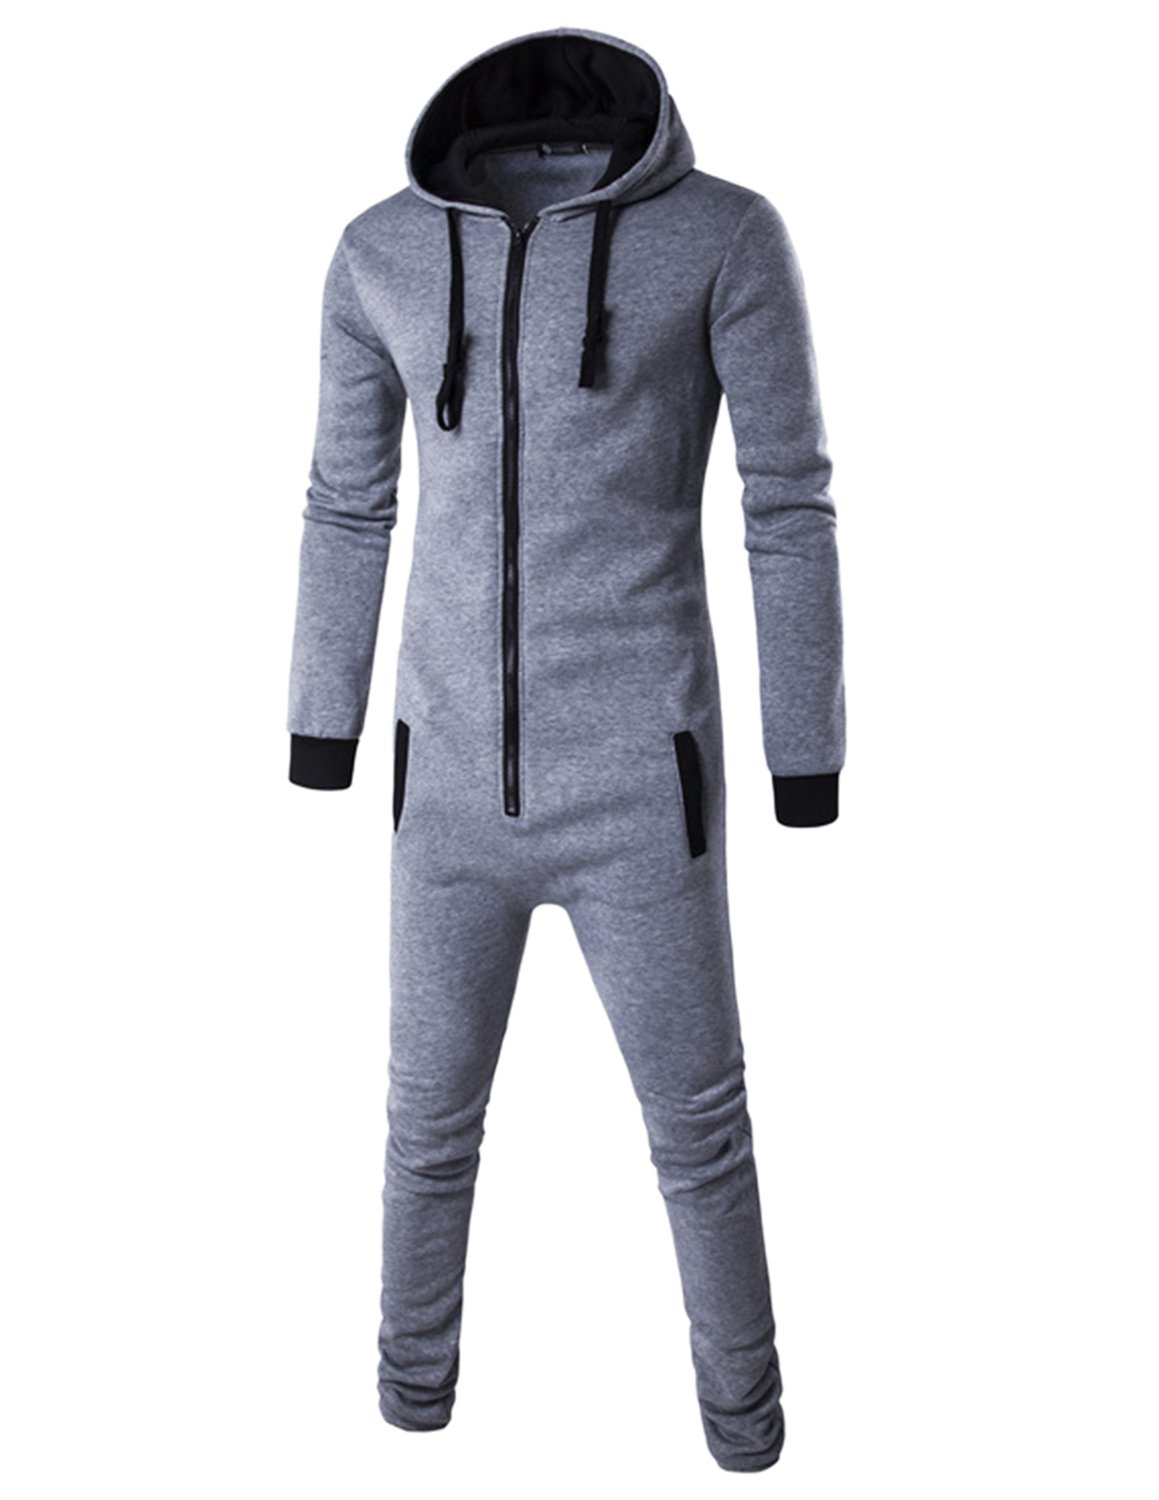 Haseil Men's Onesie Pajama Non Footed Zip Up Adult With Hoodie One Piece Jumpsuit, Light Grey, TagsizeXXL=UssizeM